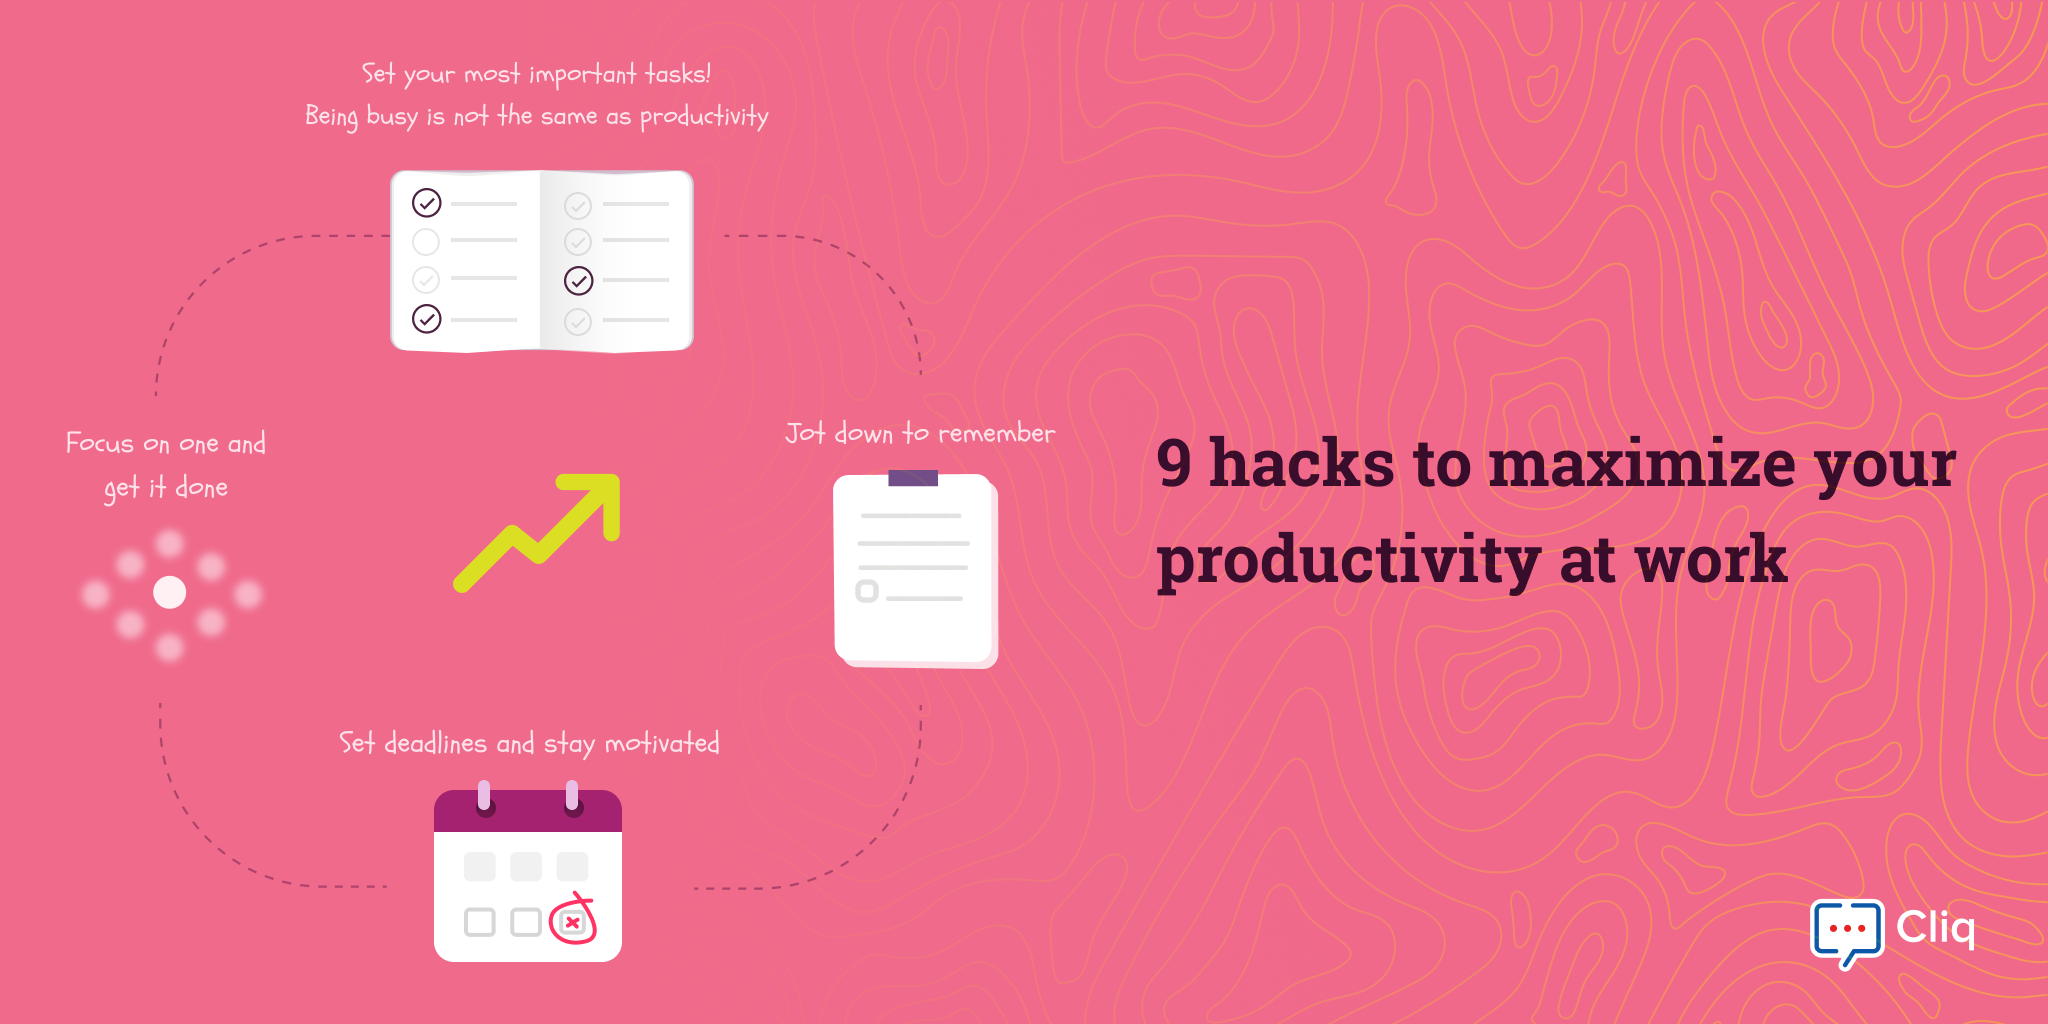 9 hacks to maximize your productivity at work